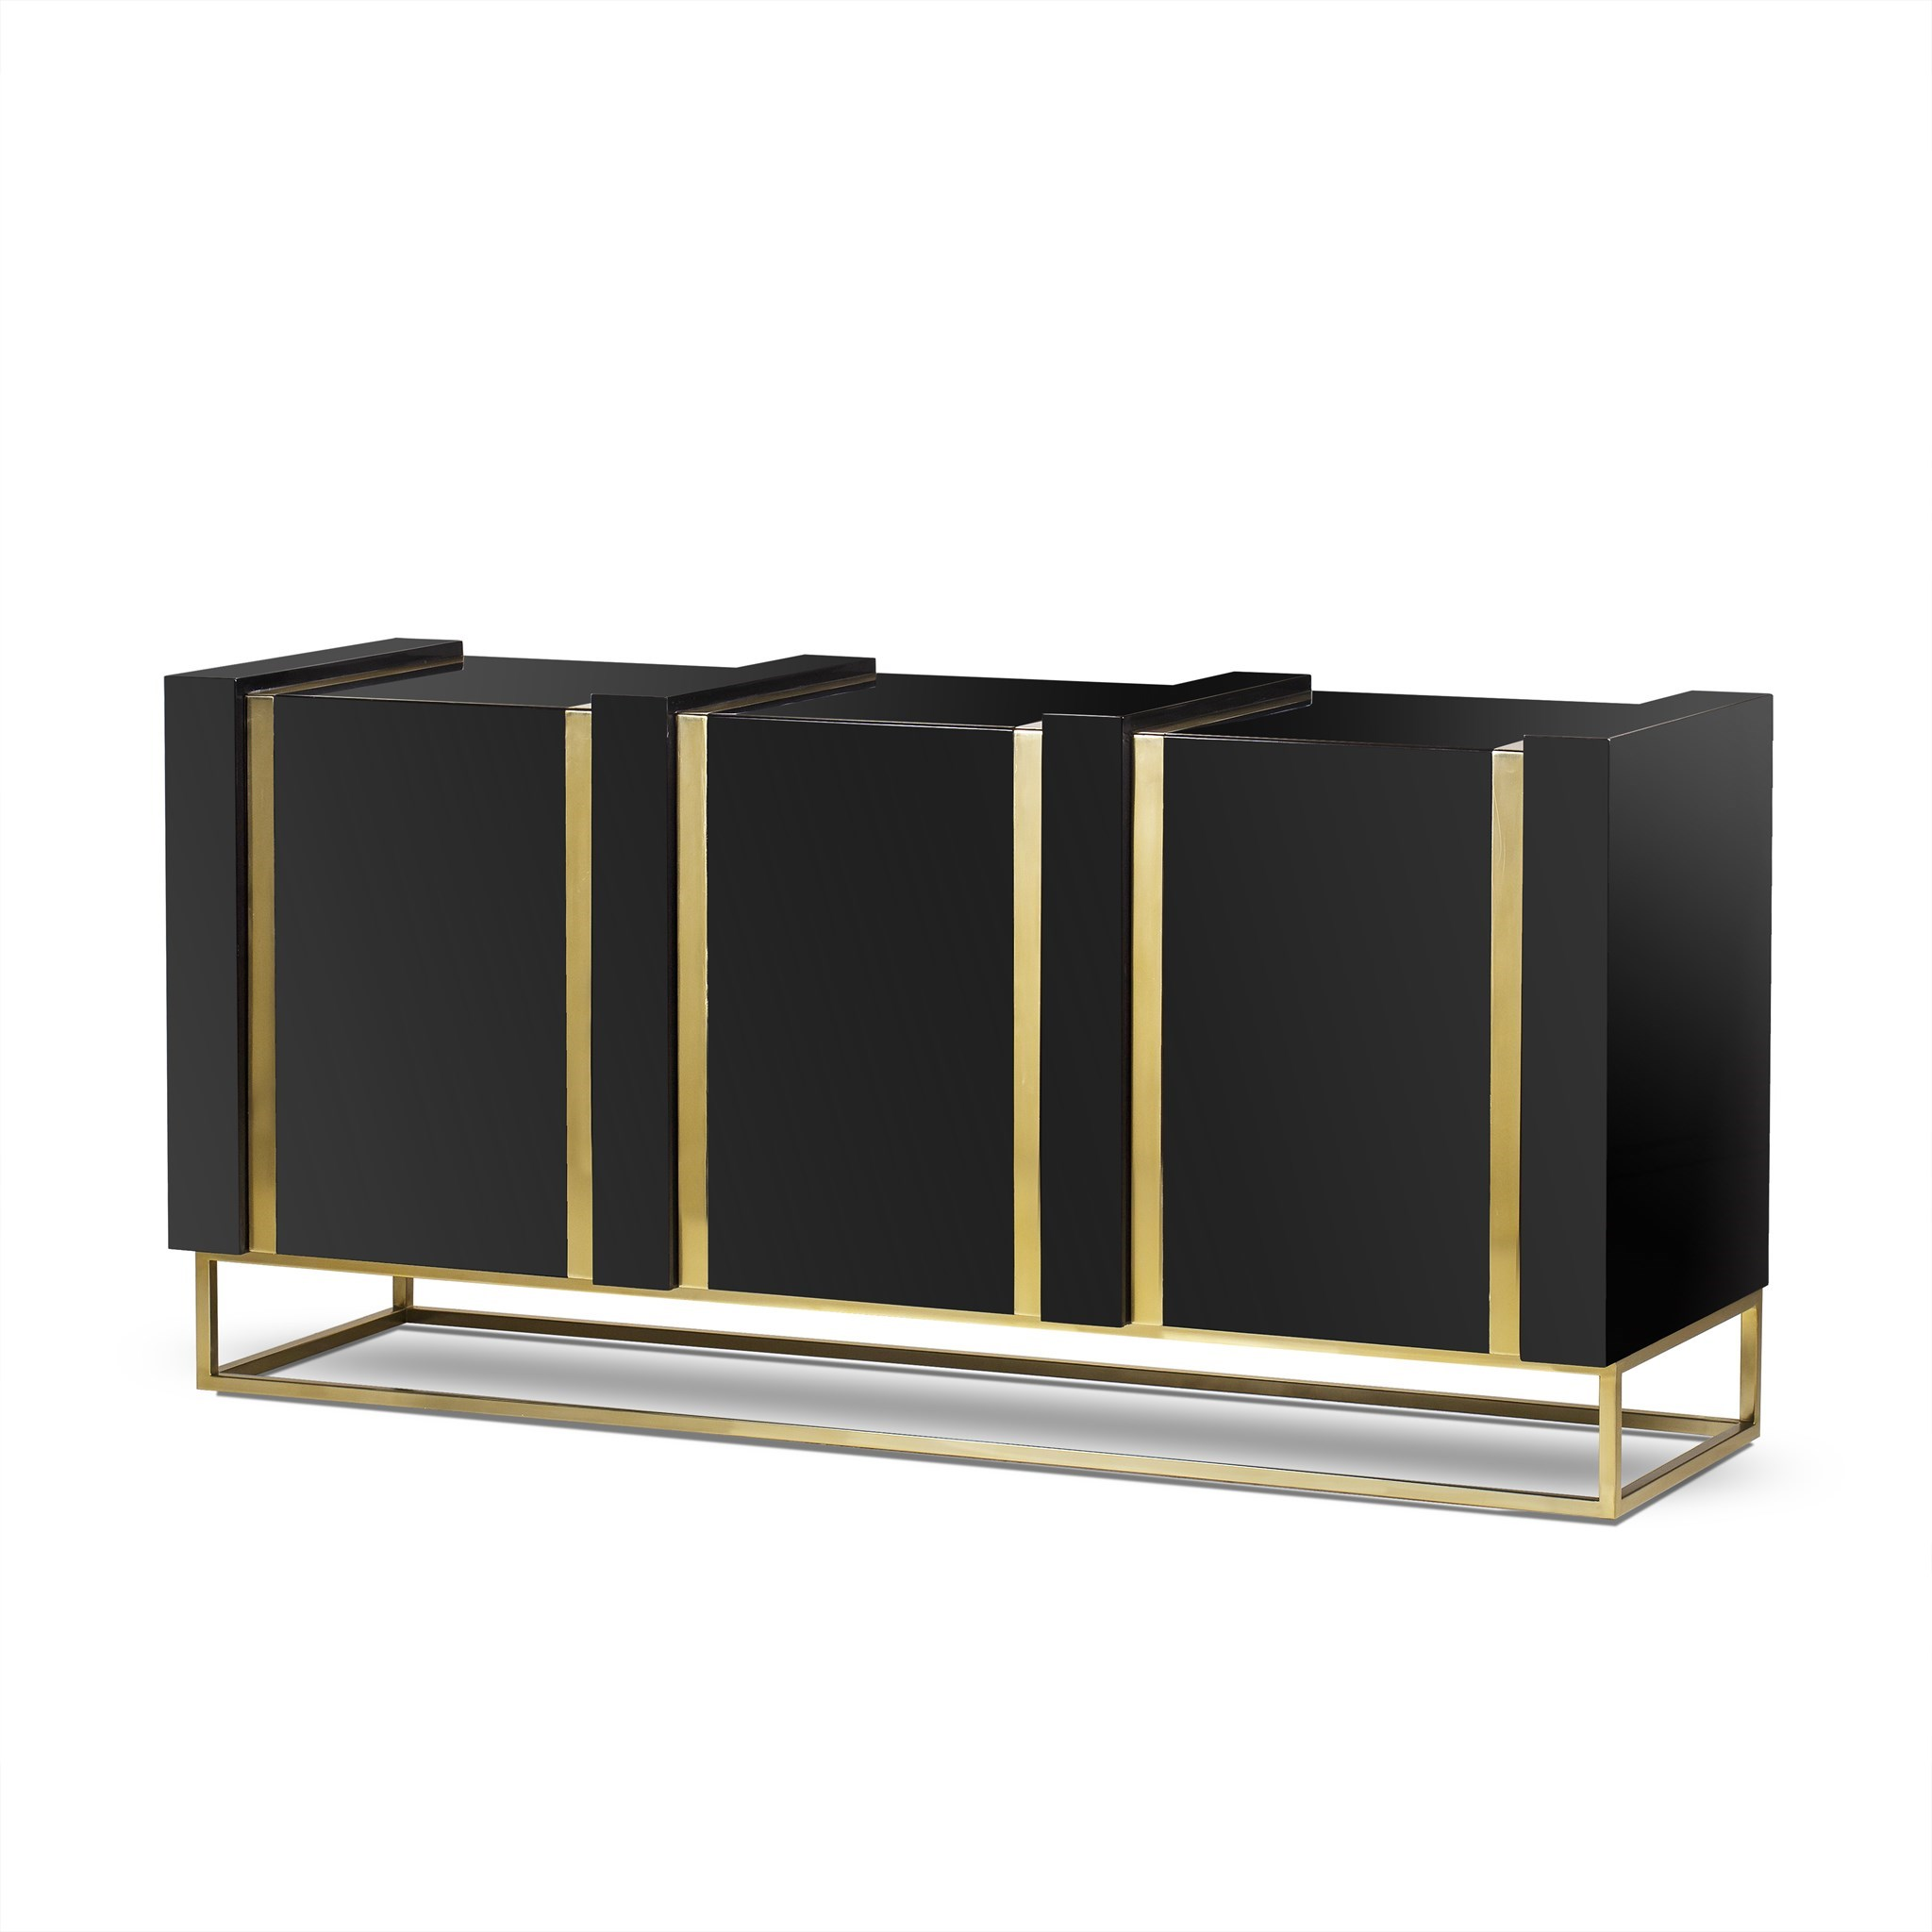 Deluxe Door Designs By Amersham S Iq Furniture: Credenzas And Sideboards